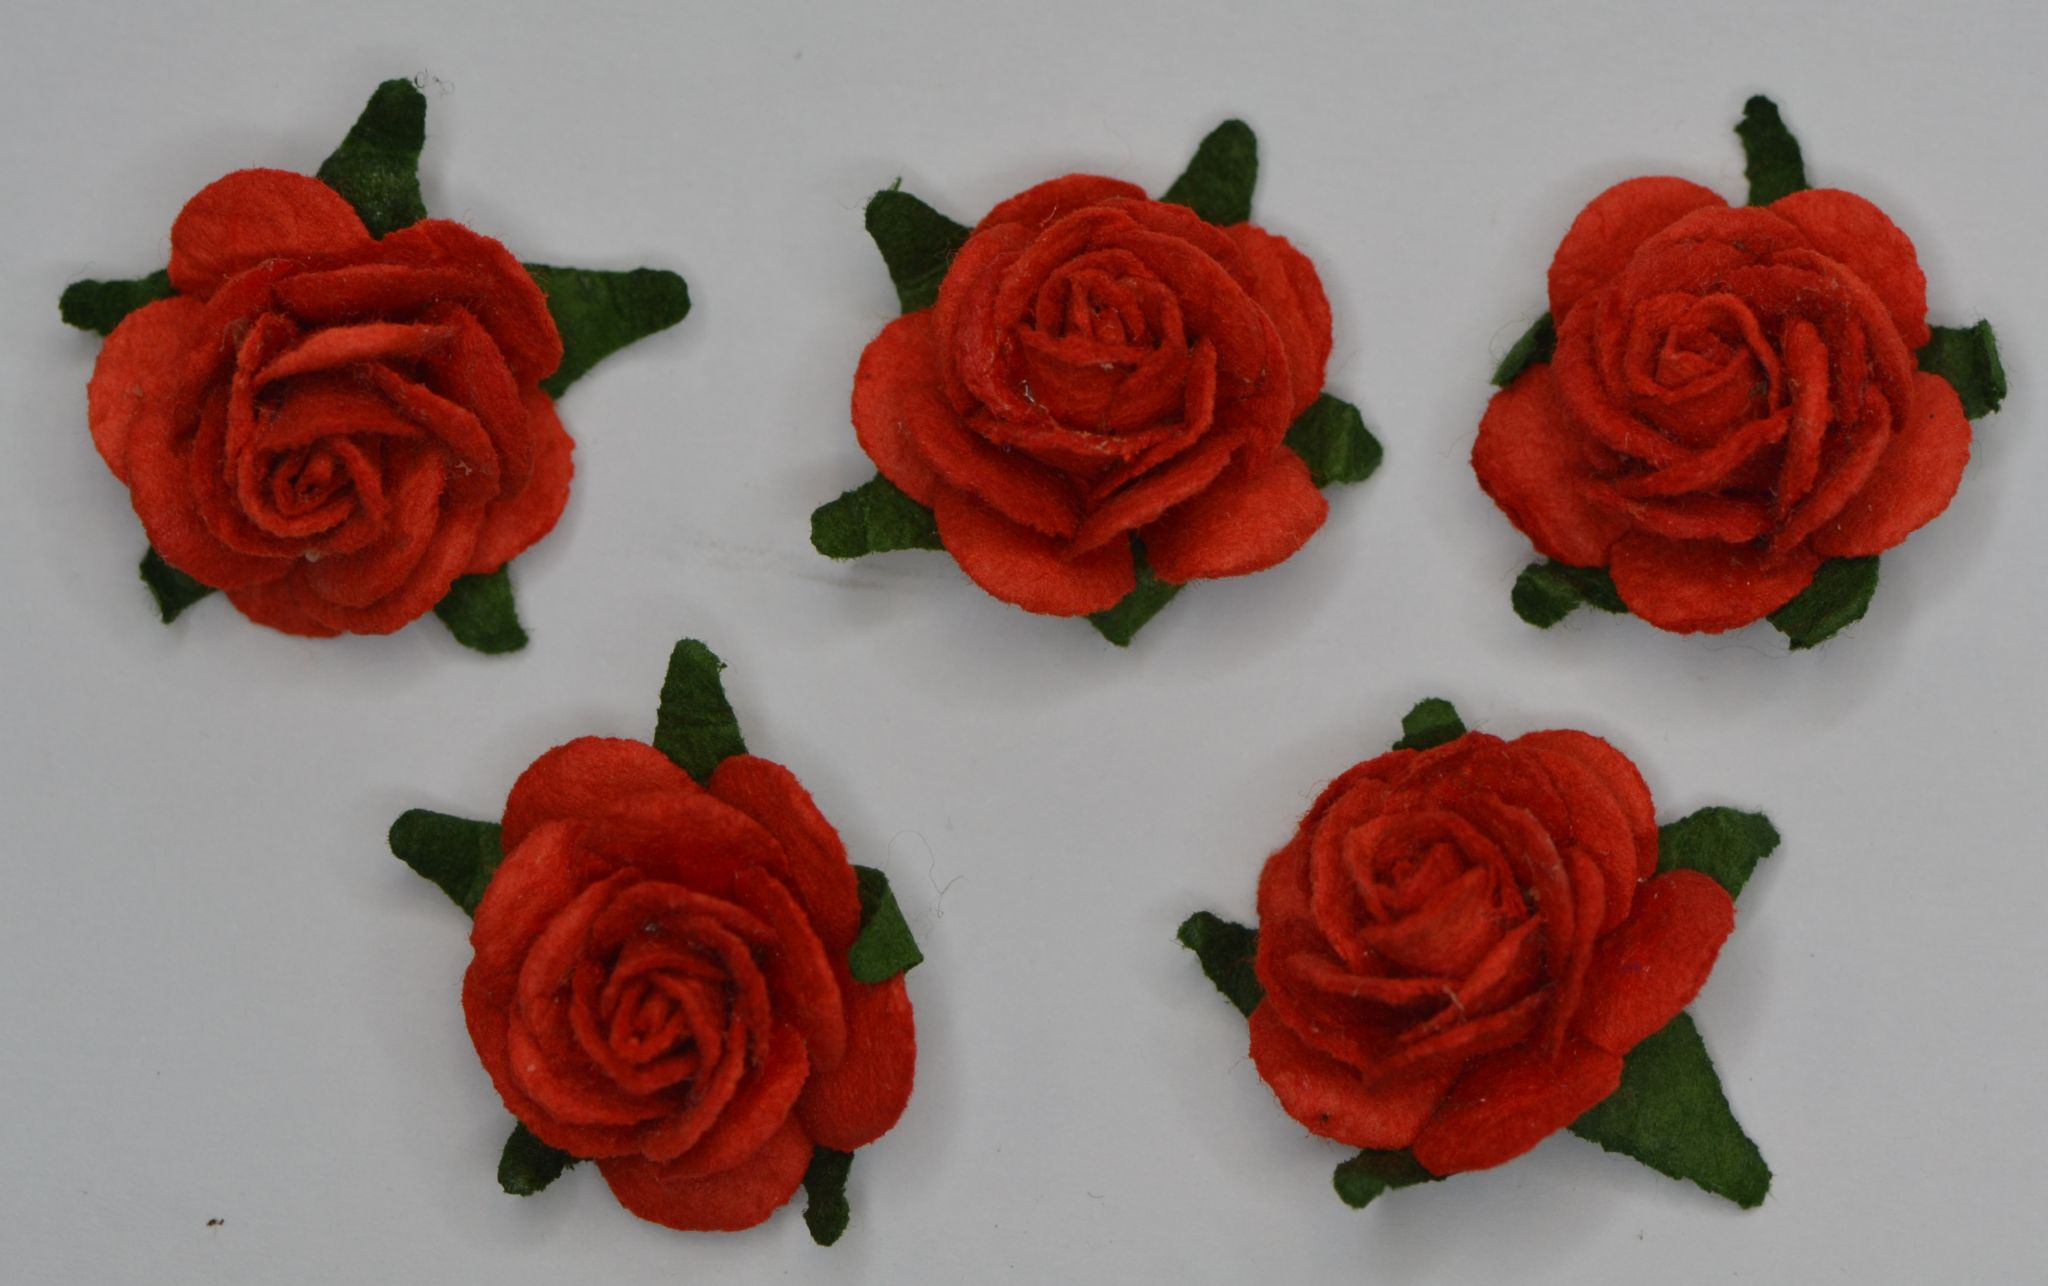 25cm Red Mulberry Paper Roses Only Flower Head